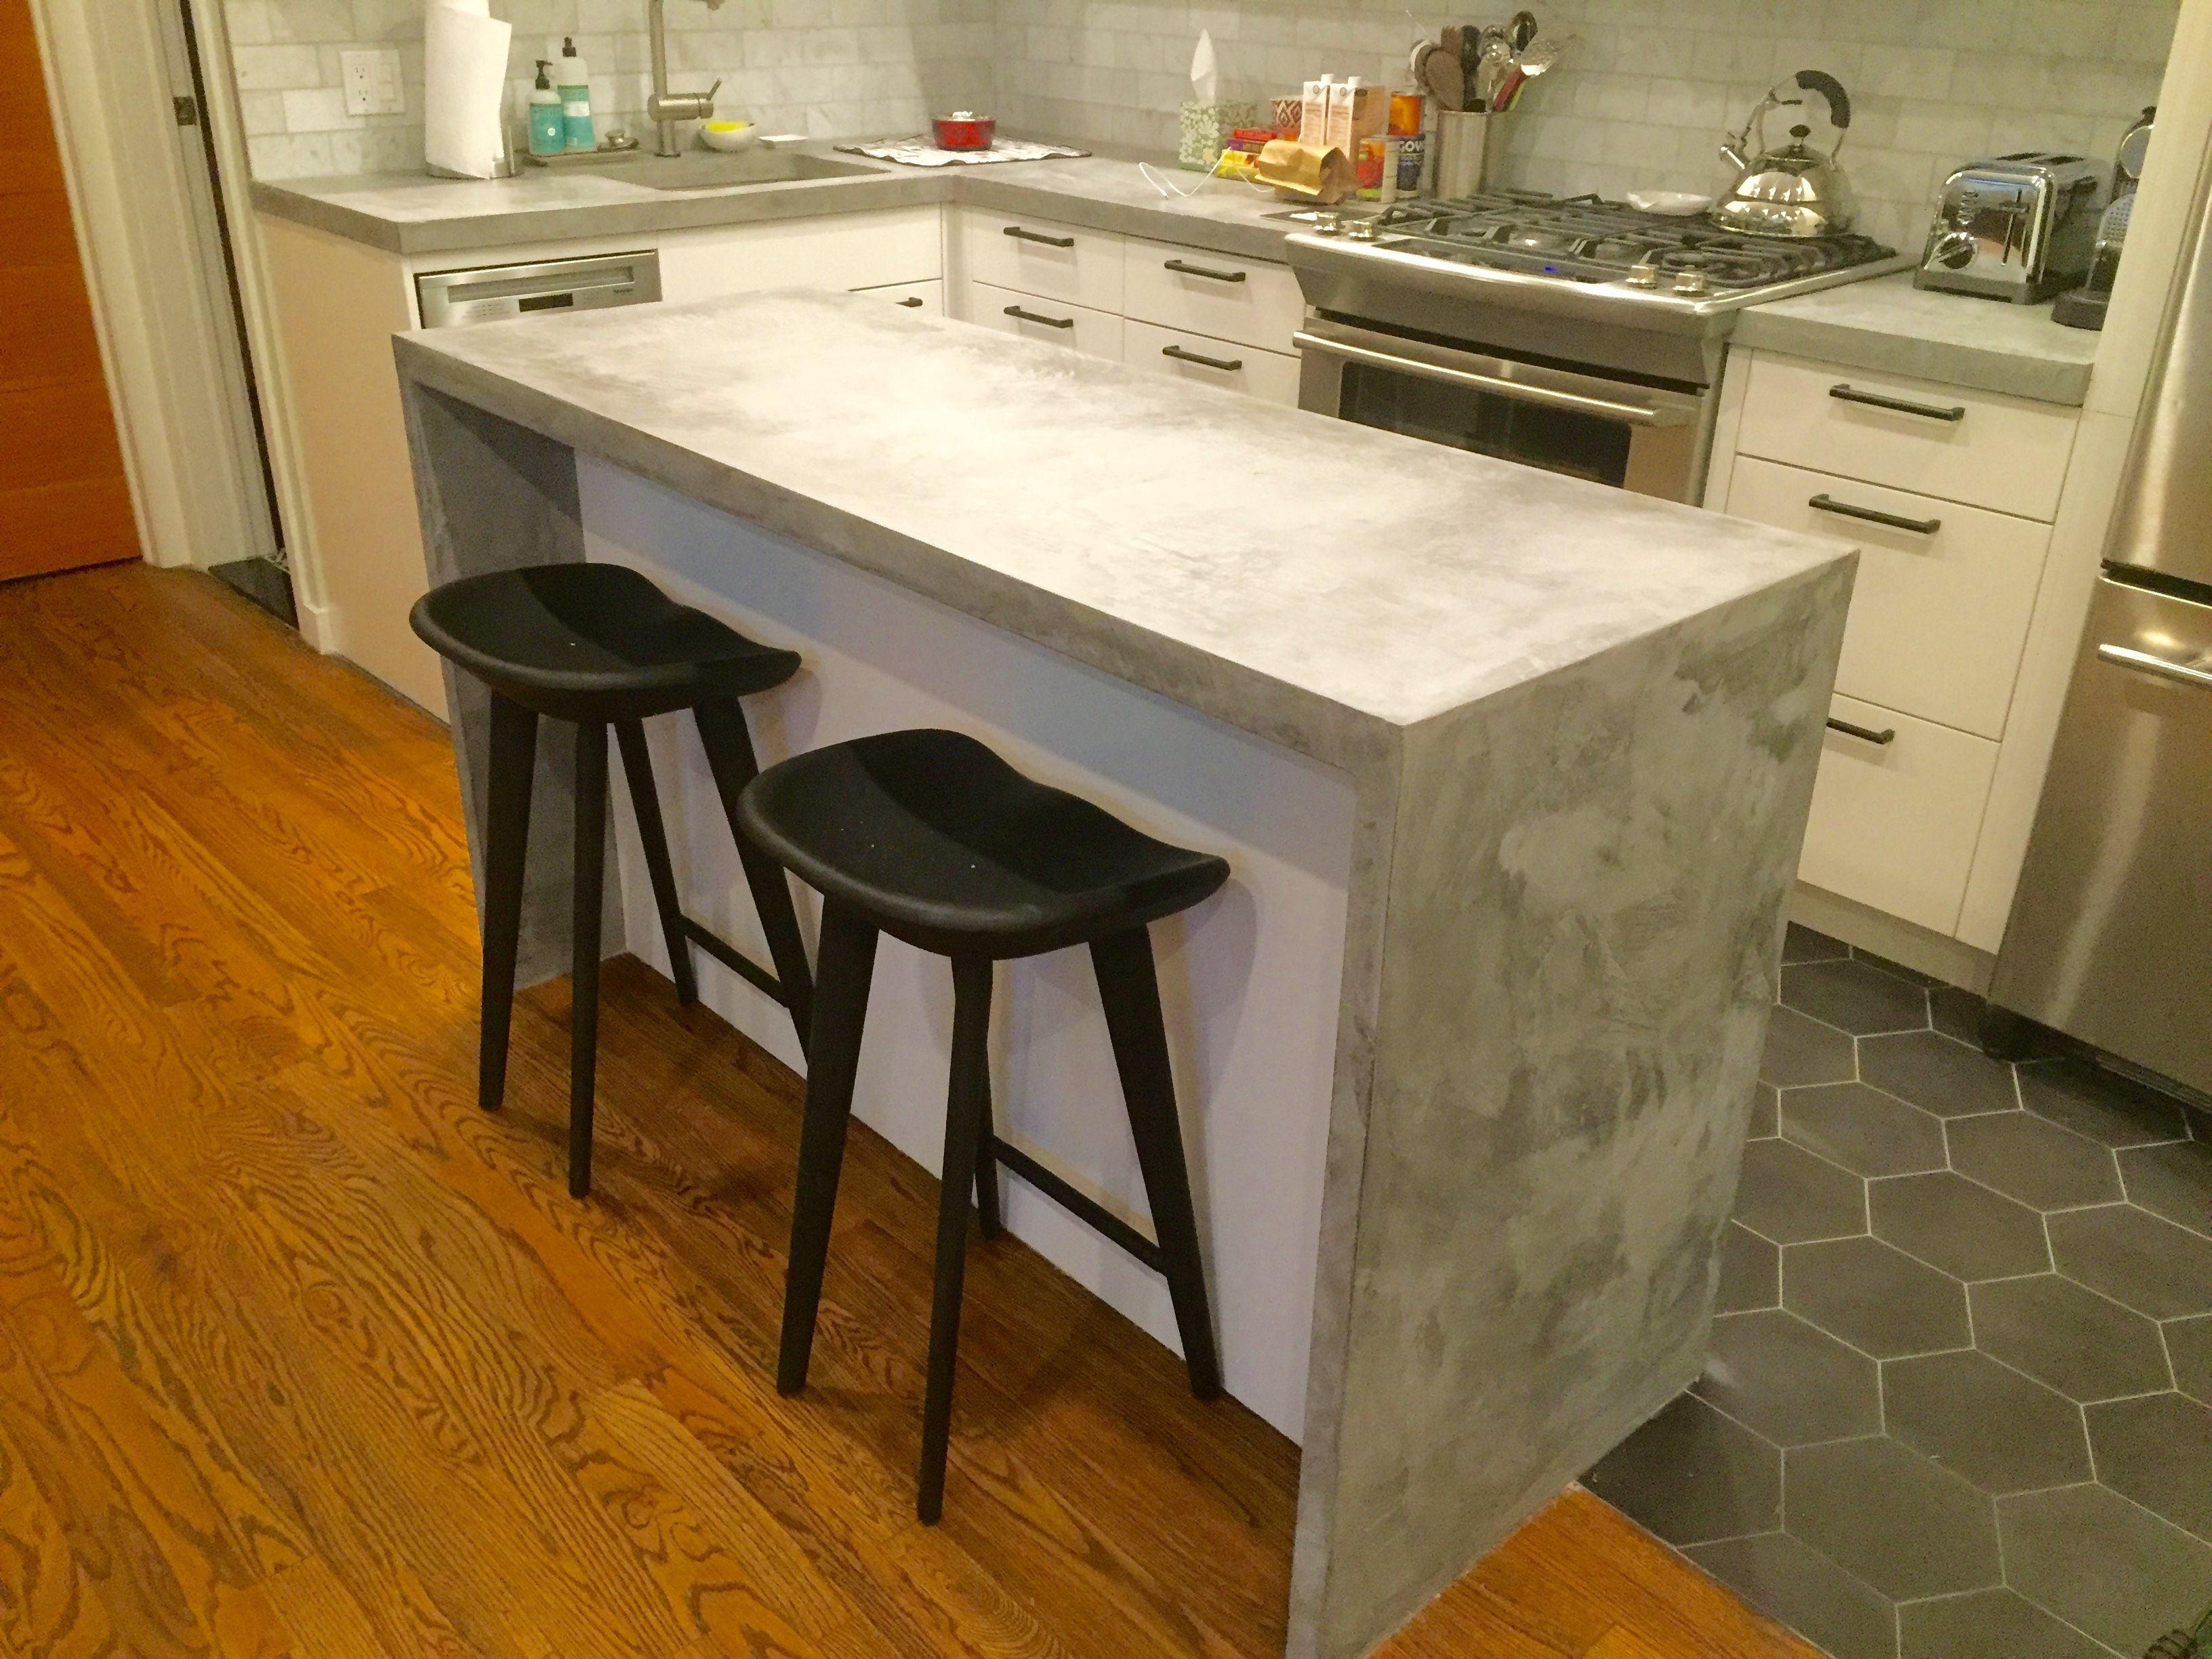 Cast In Place Concrete Countertops 1 5 Thick With Waterfall Walls On The Island And An Overhang For Stools